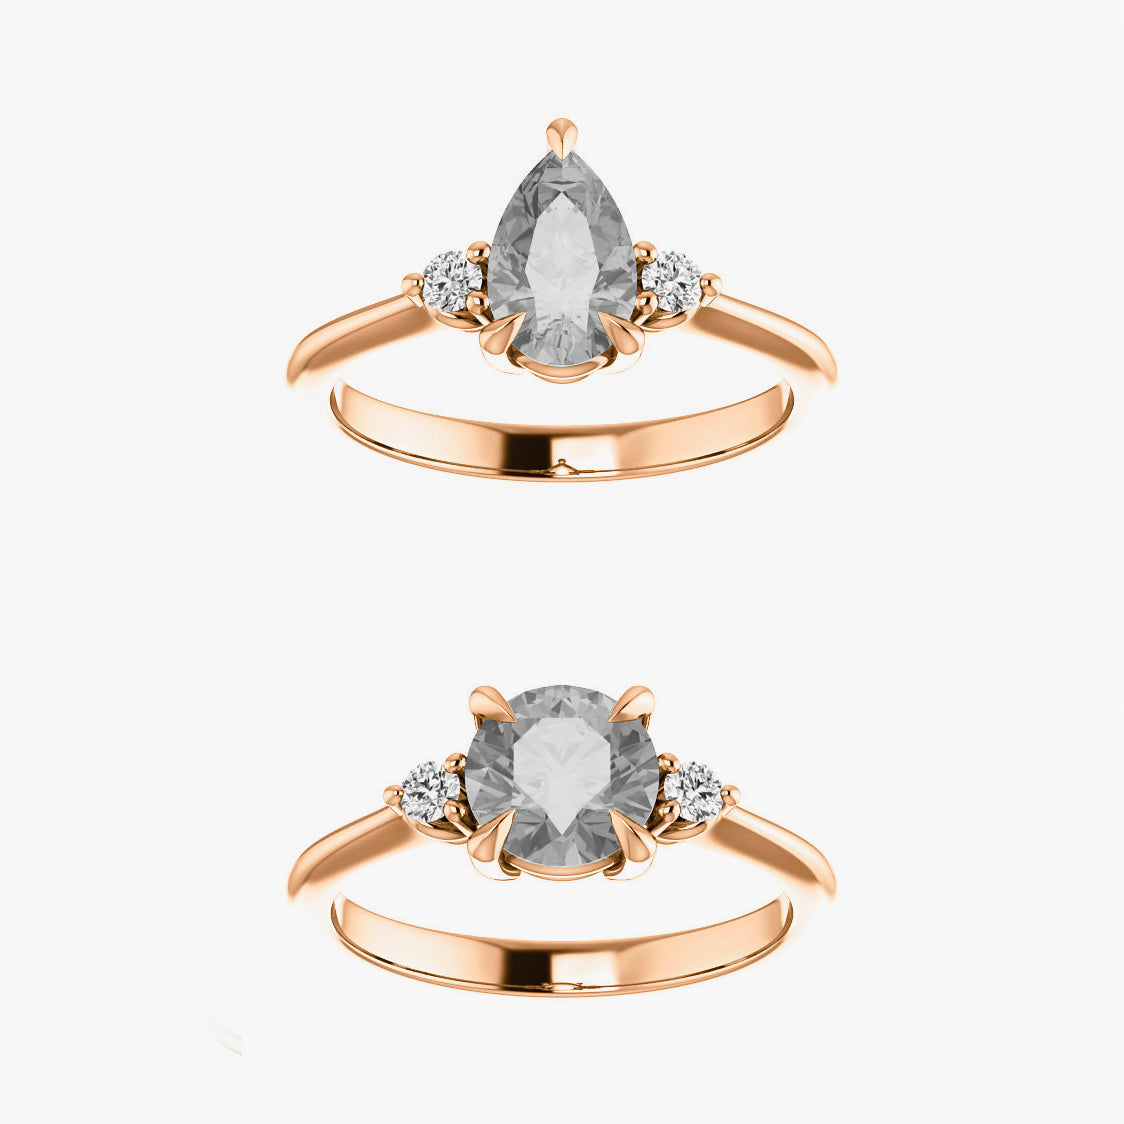 Drea Setting - Salt & Pepper Celestial Diamond Engagement Rings and Wedding Bands  by Midwinter Co.